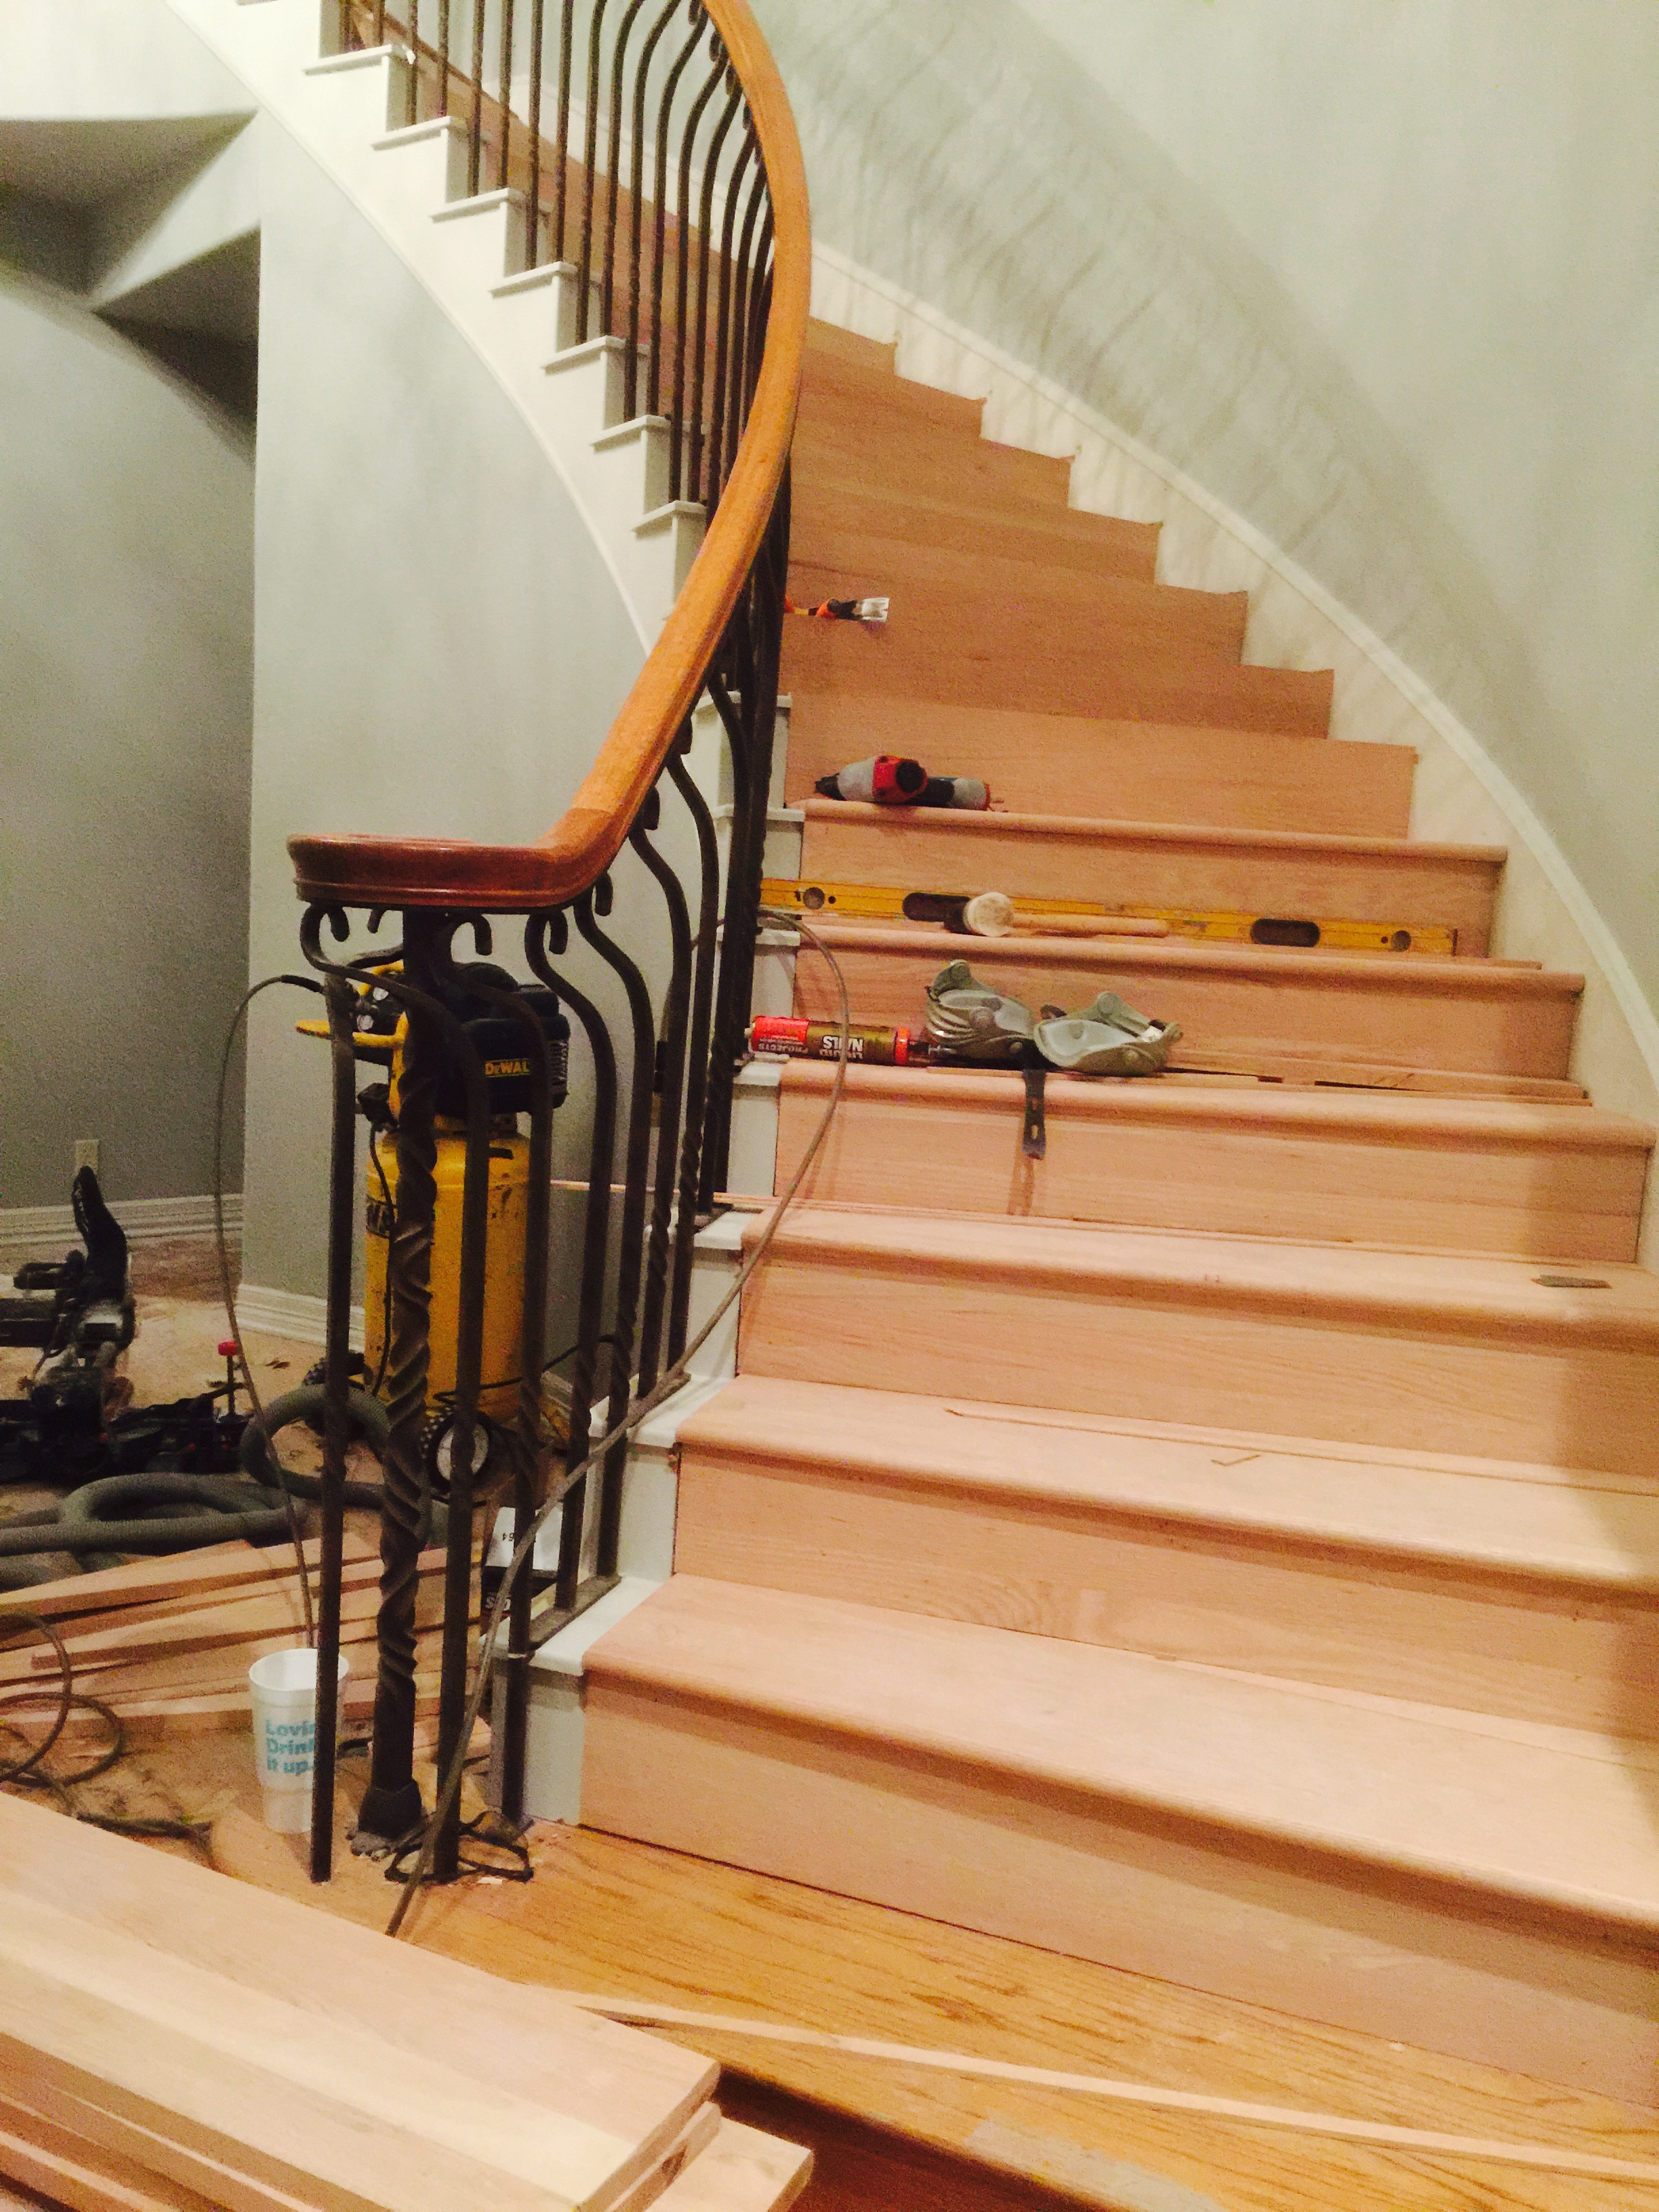 Removed carpet and installed curved solid oak stair treds.